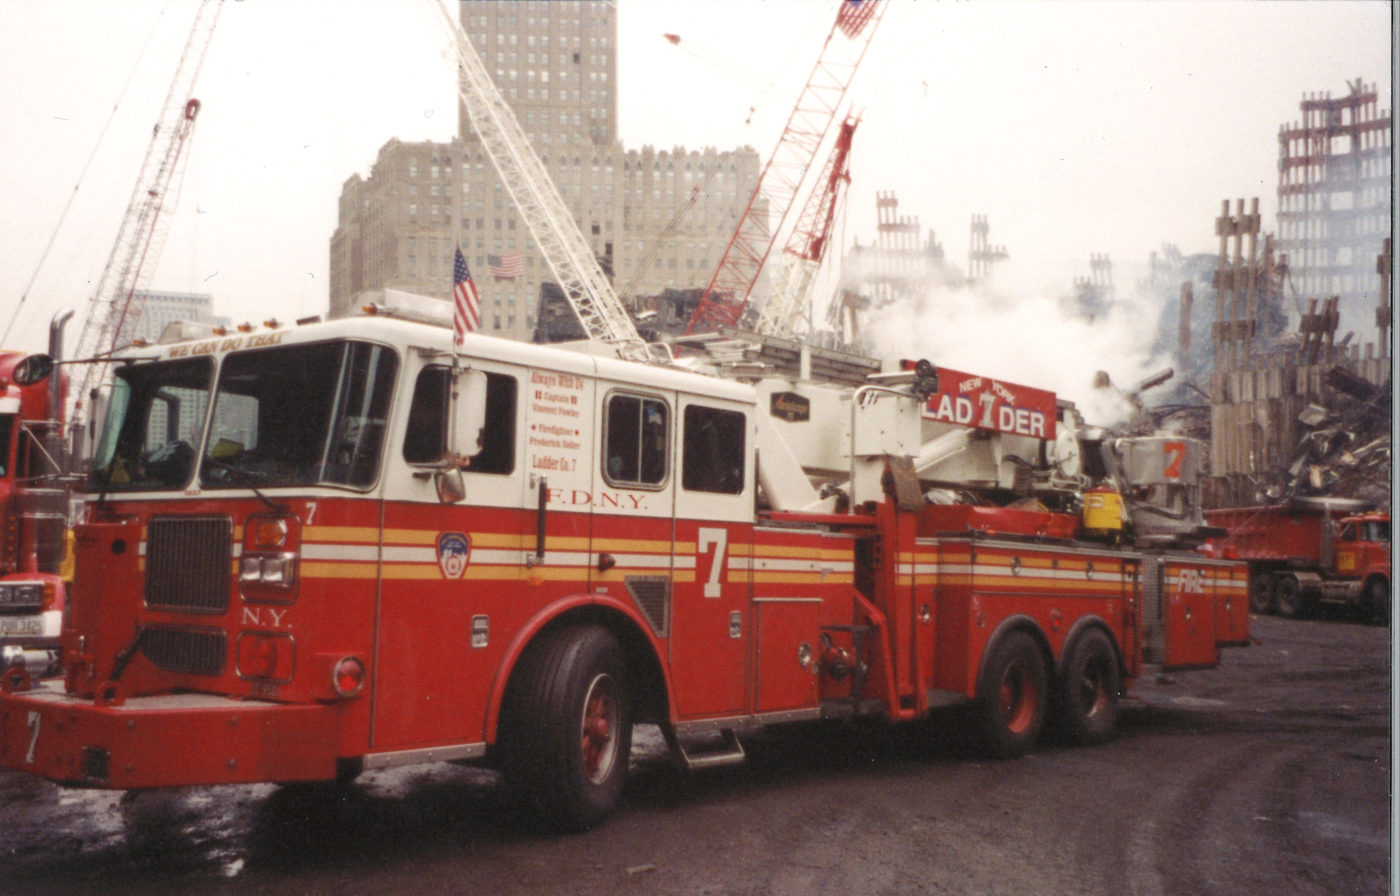 Ladder 7 from East 29th Street on West Street 140 Liberty in background